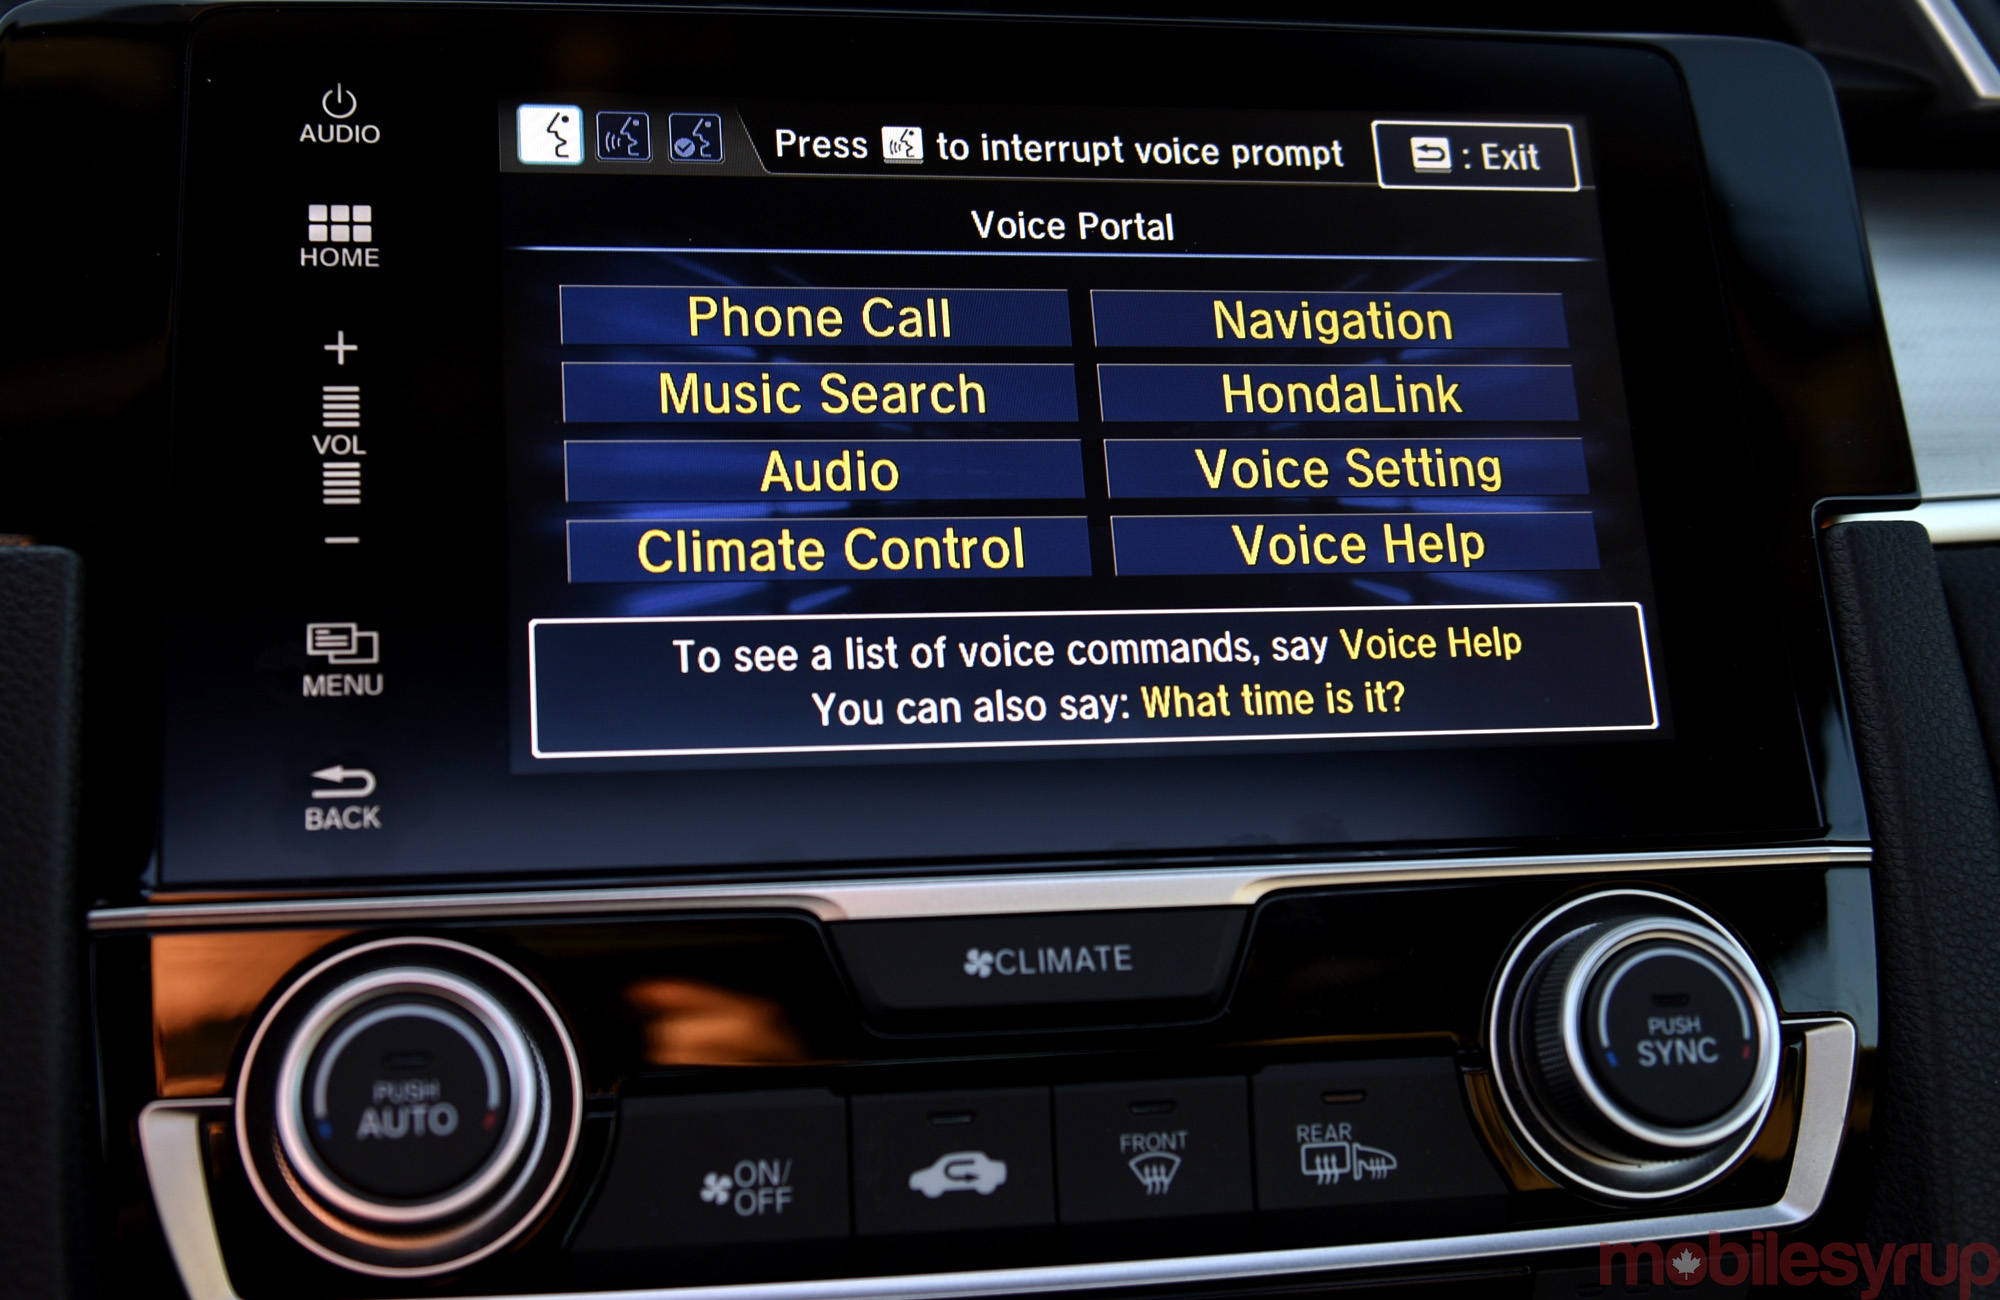 HondaLink voice menu